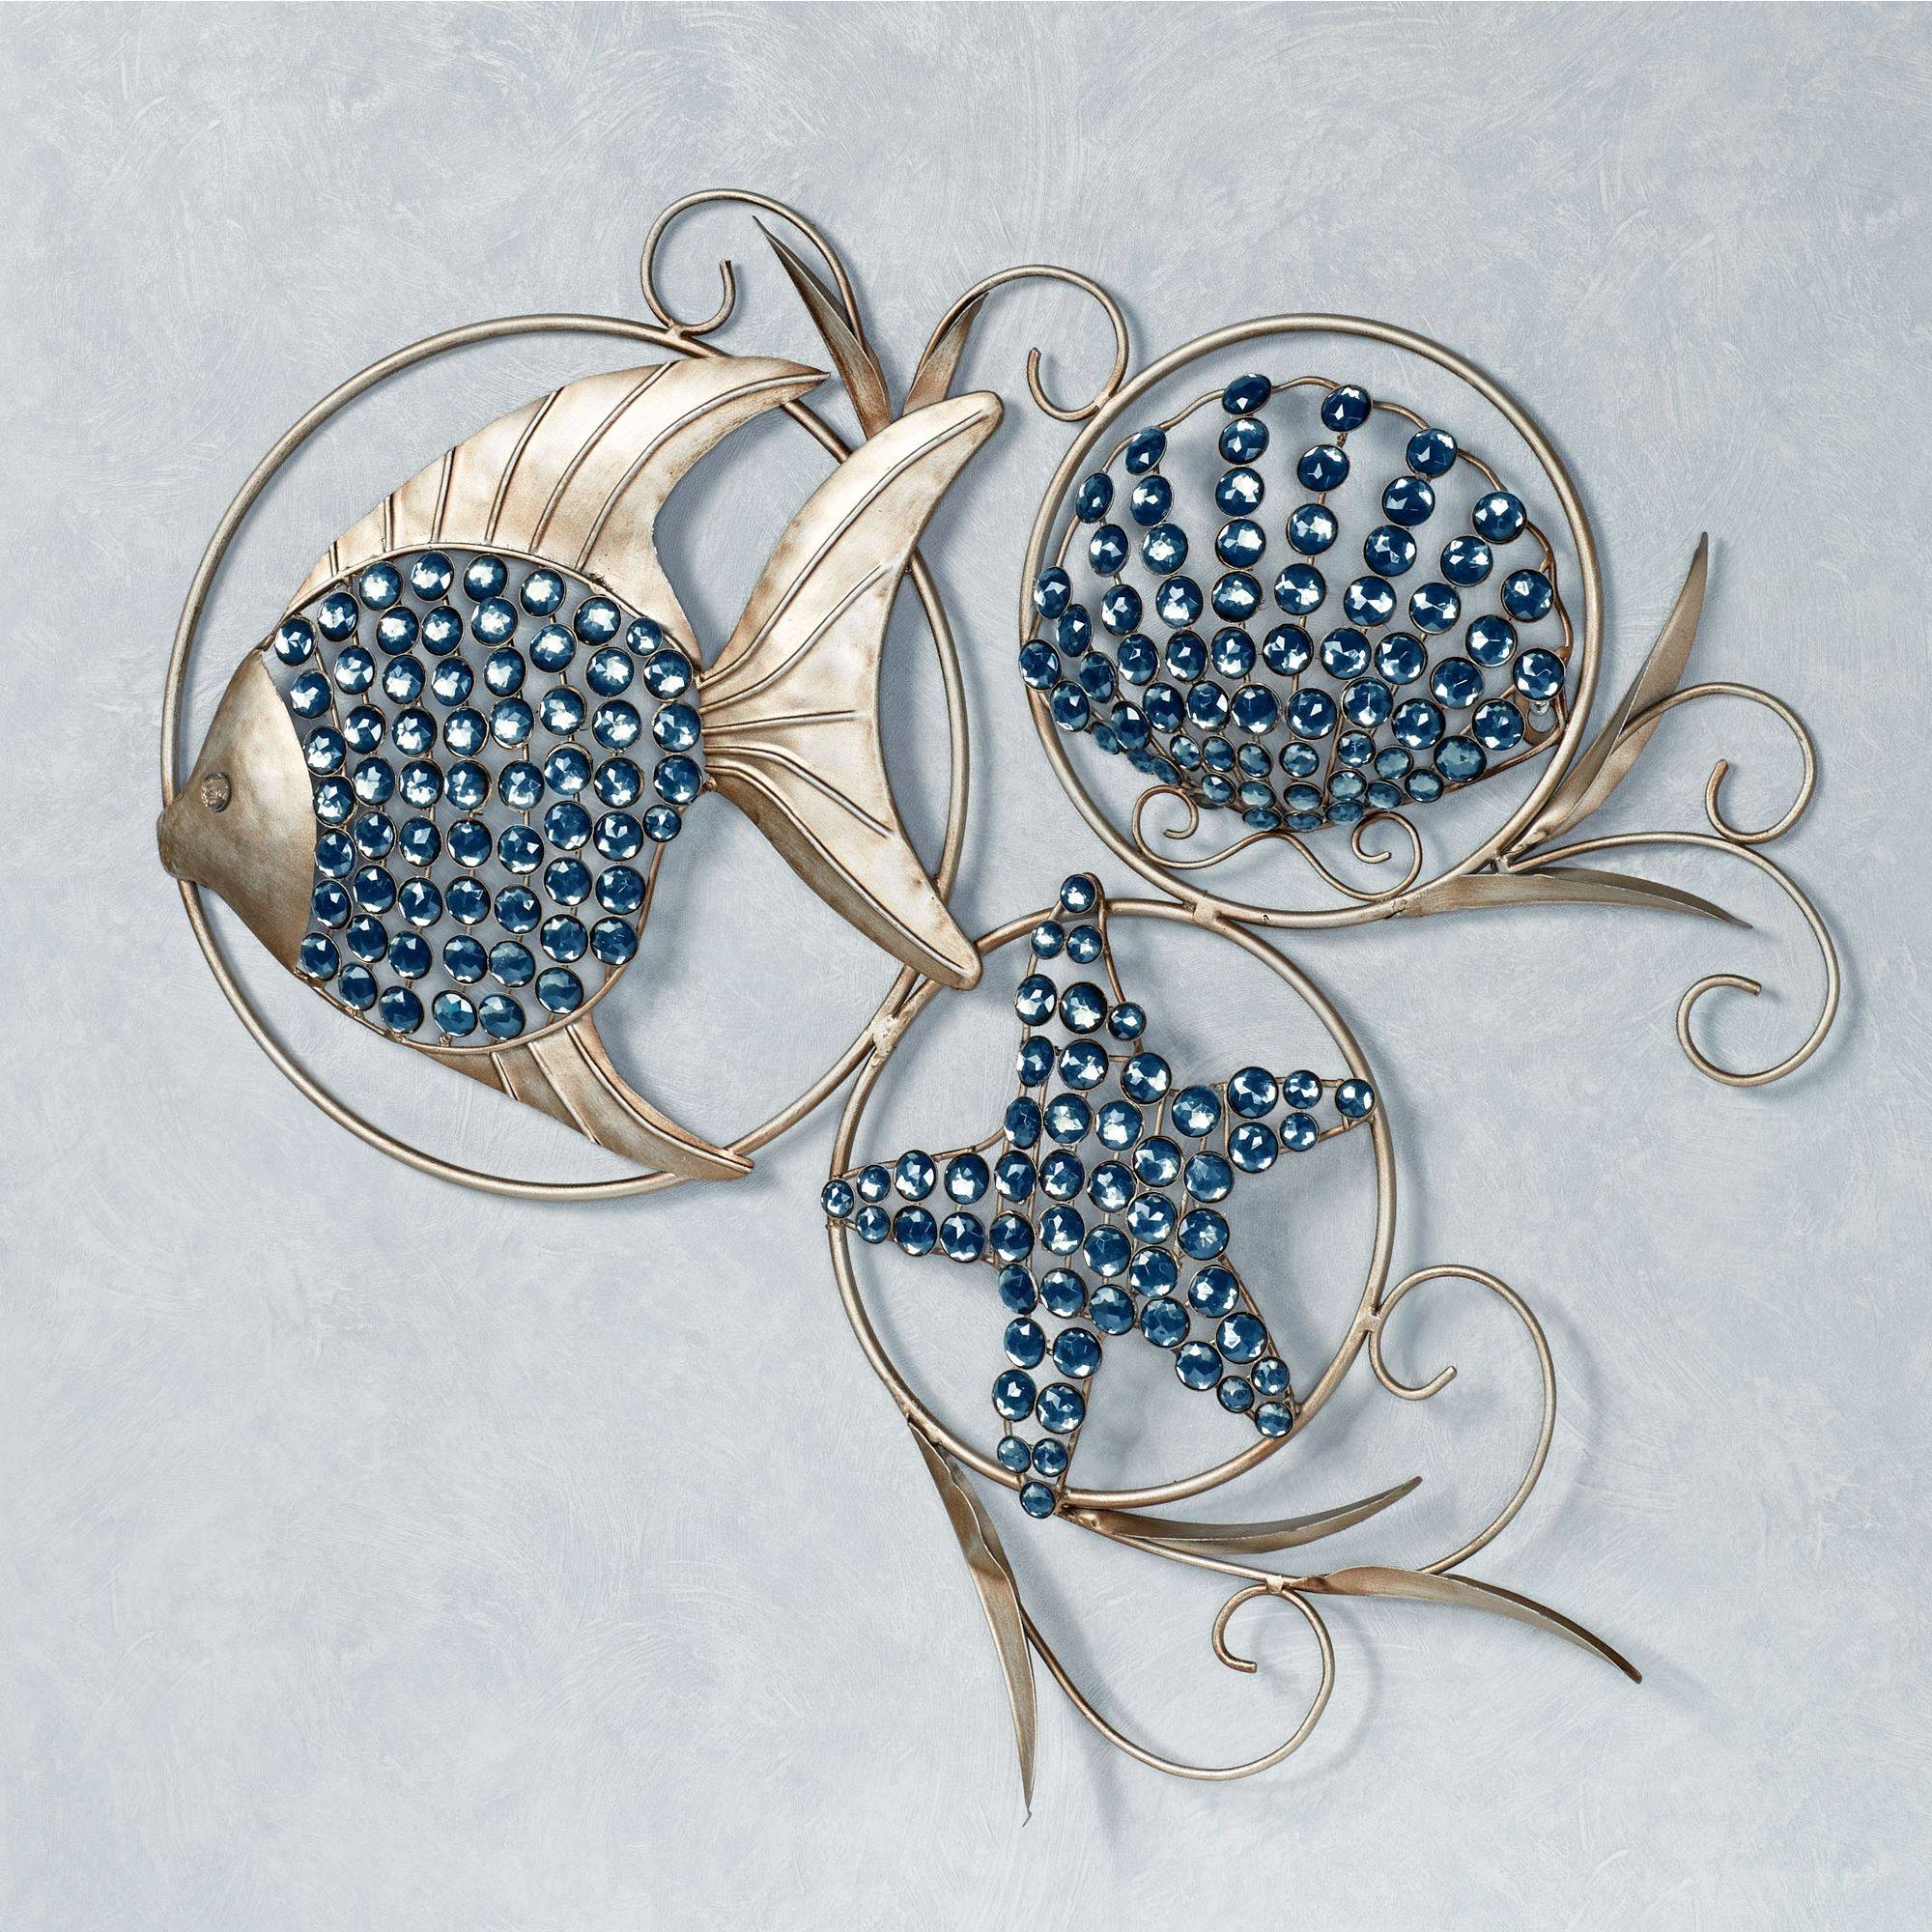 Ocean Gems Fish And Seashell Metal Wall Art With Best And Newest Coastal Metal Wall Art (Gallery 4 of 20)